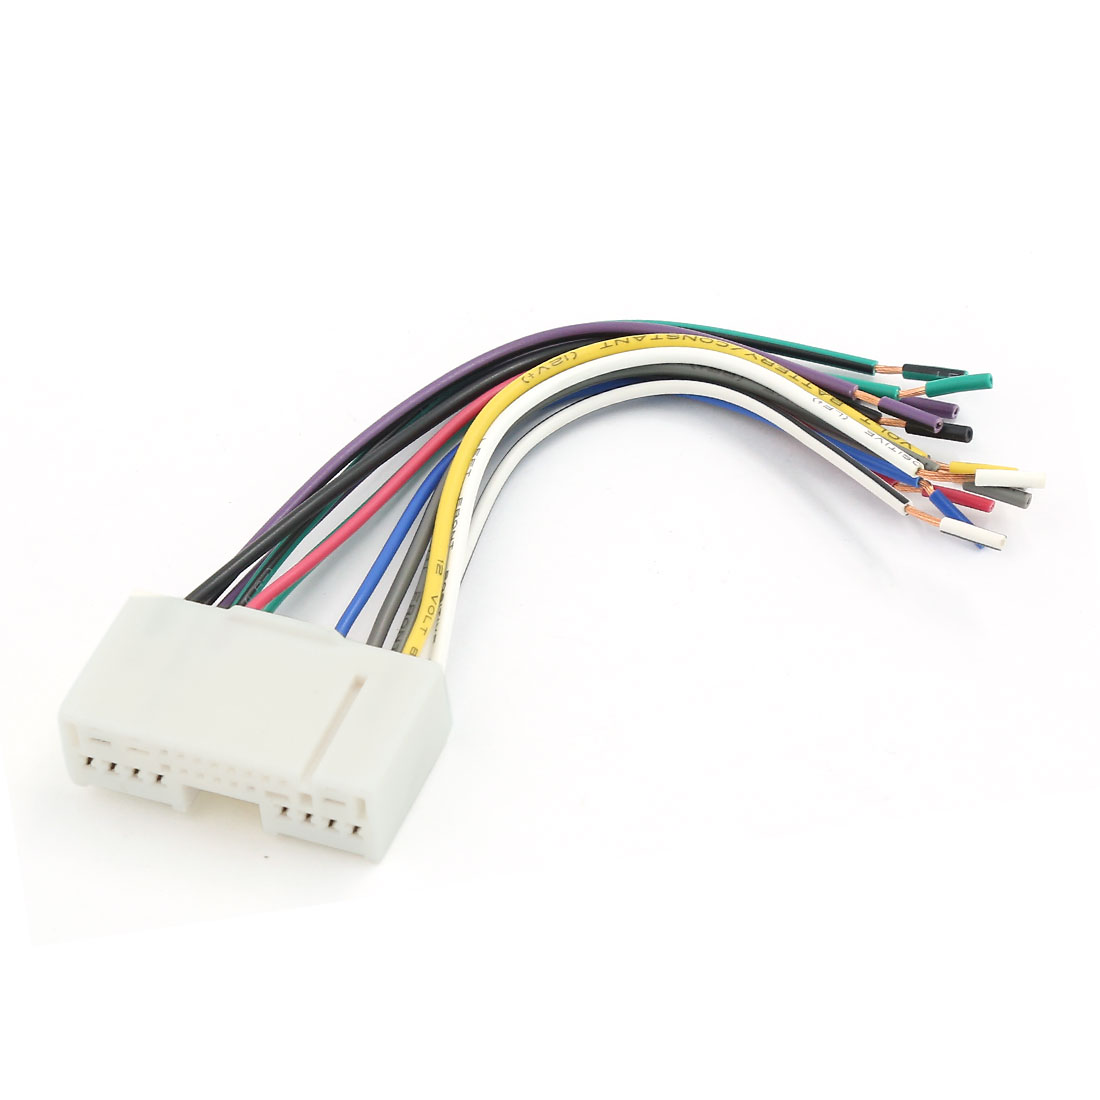 hight resolution of car radio stereo cd player wiring harness wire adapter car stereo wiring harness auto wire harness